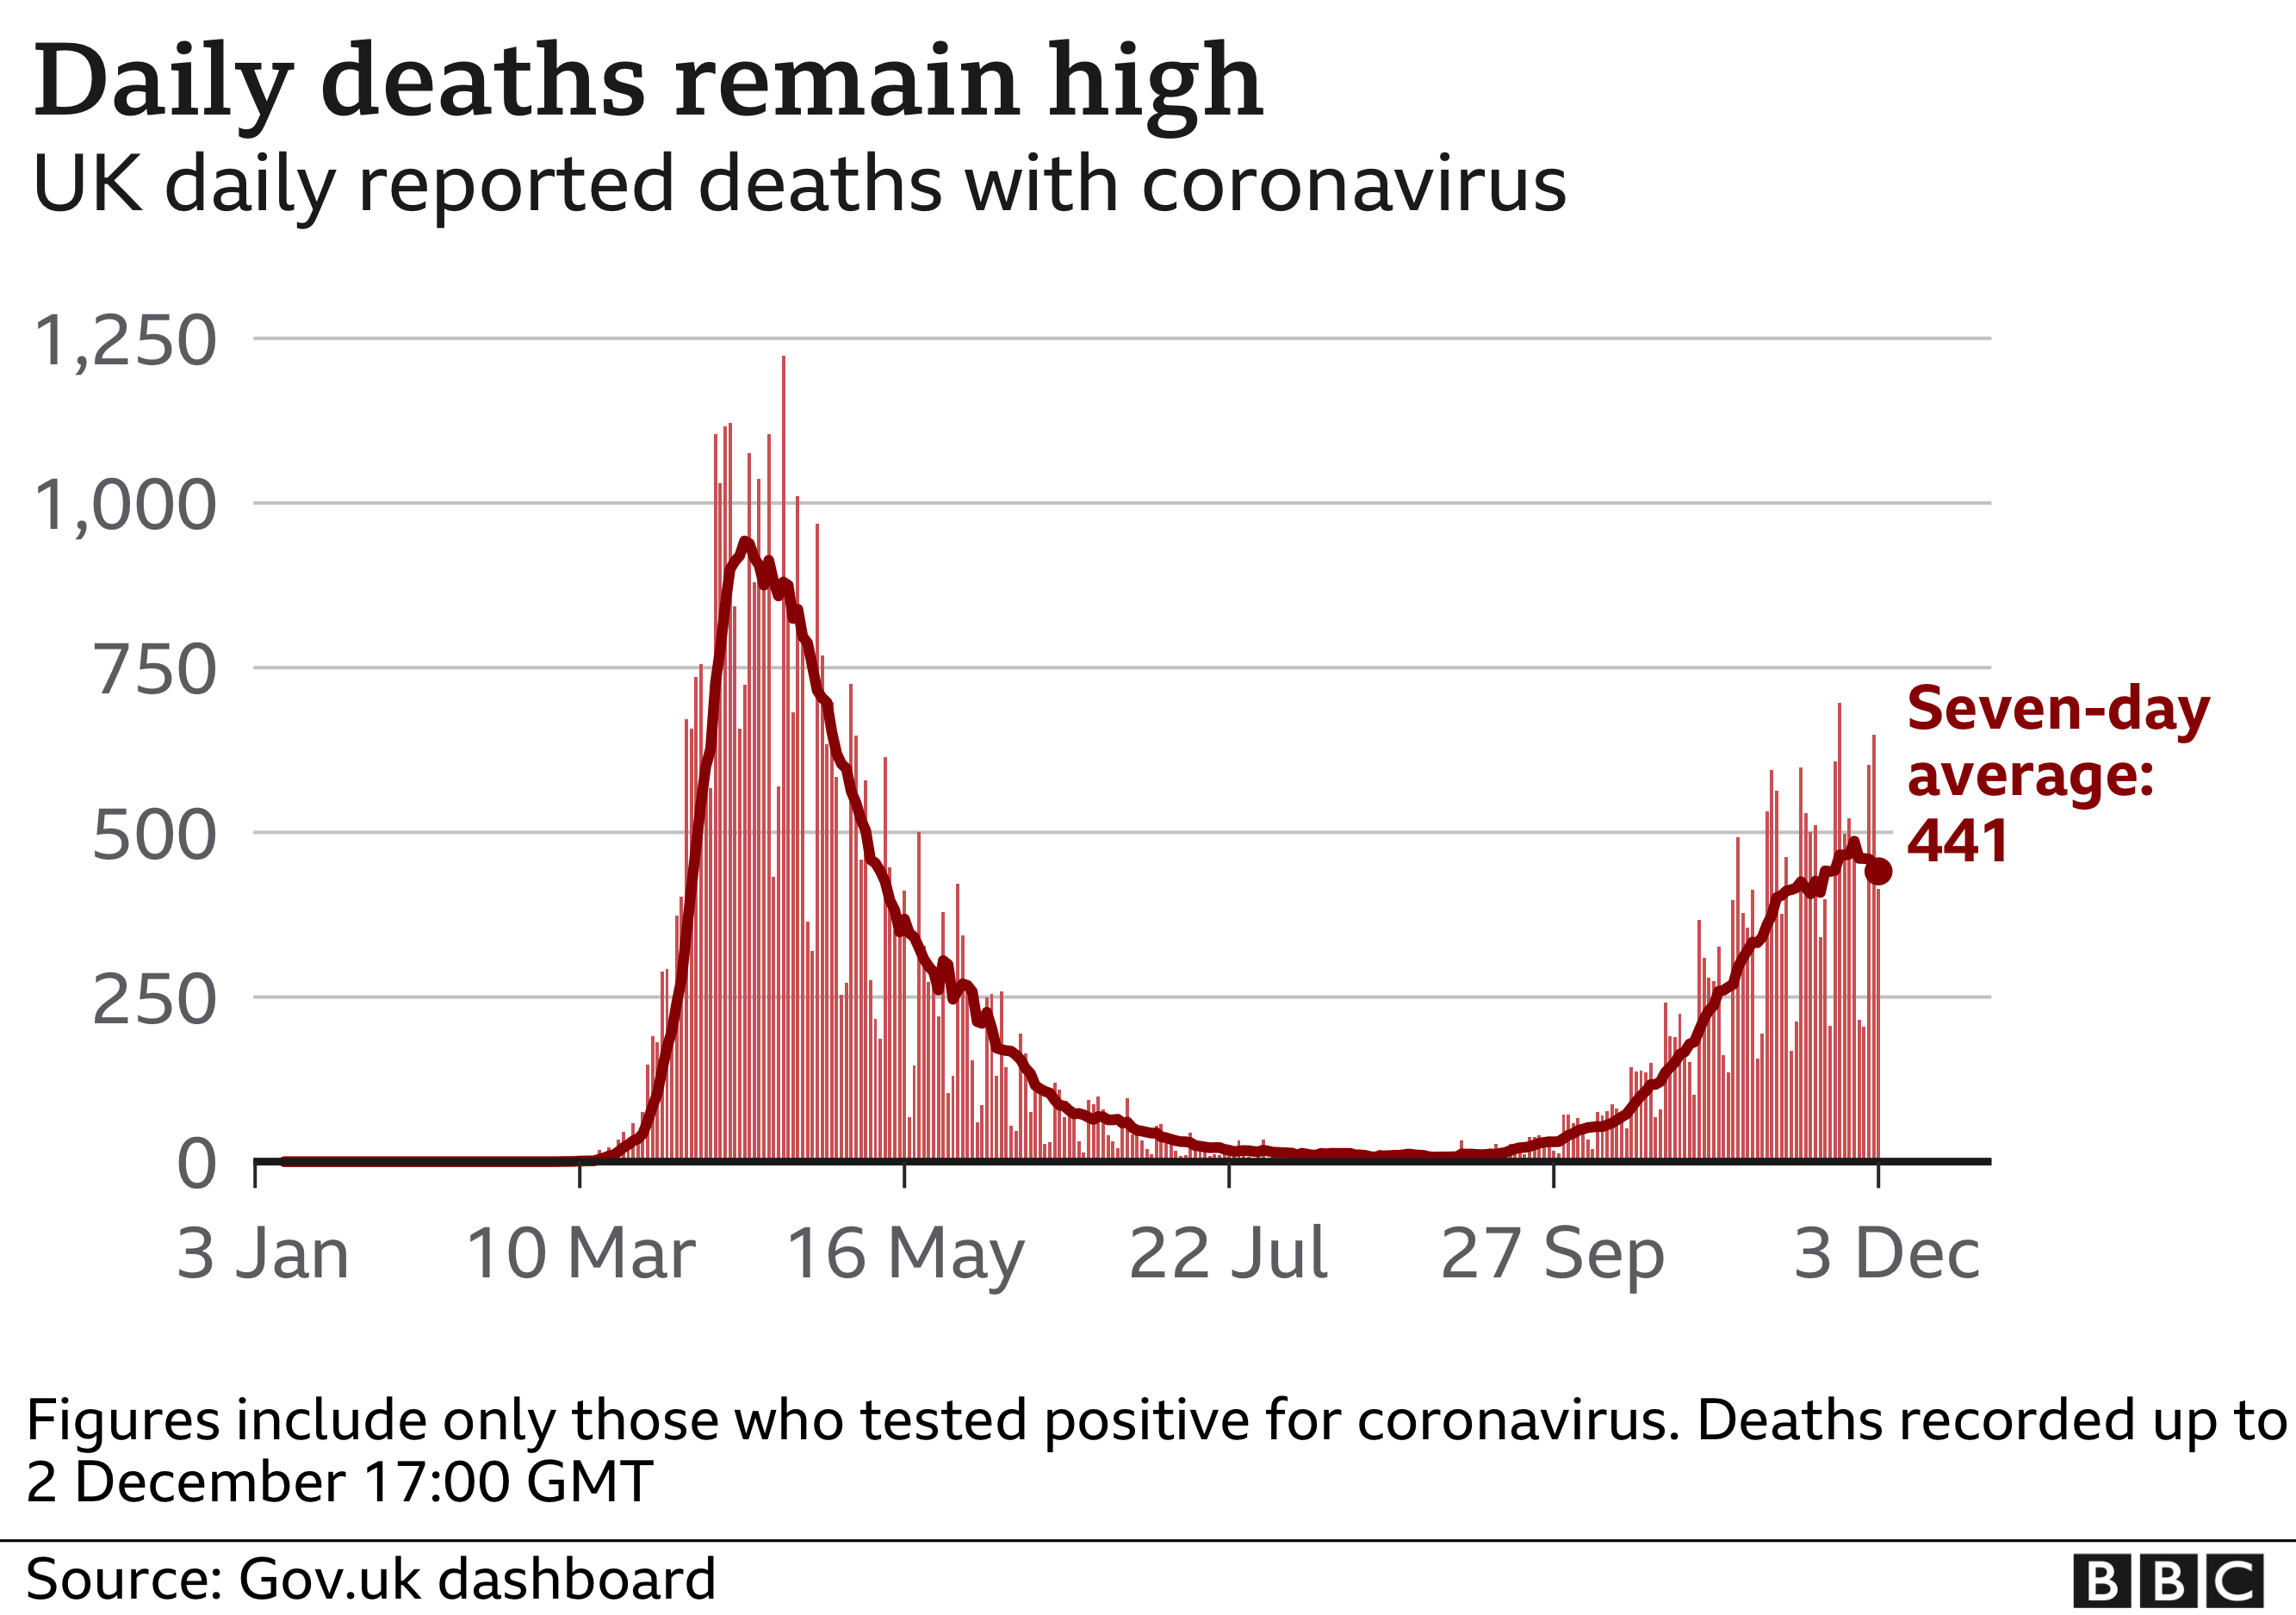 Chart showing daily deaths within 28 days of positive test